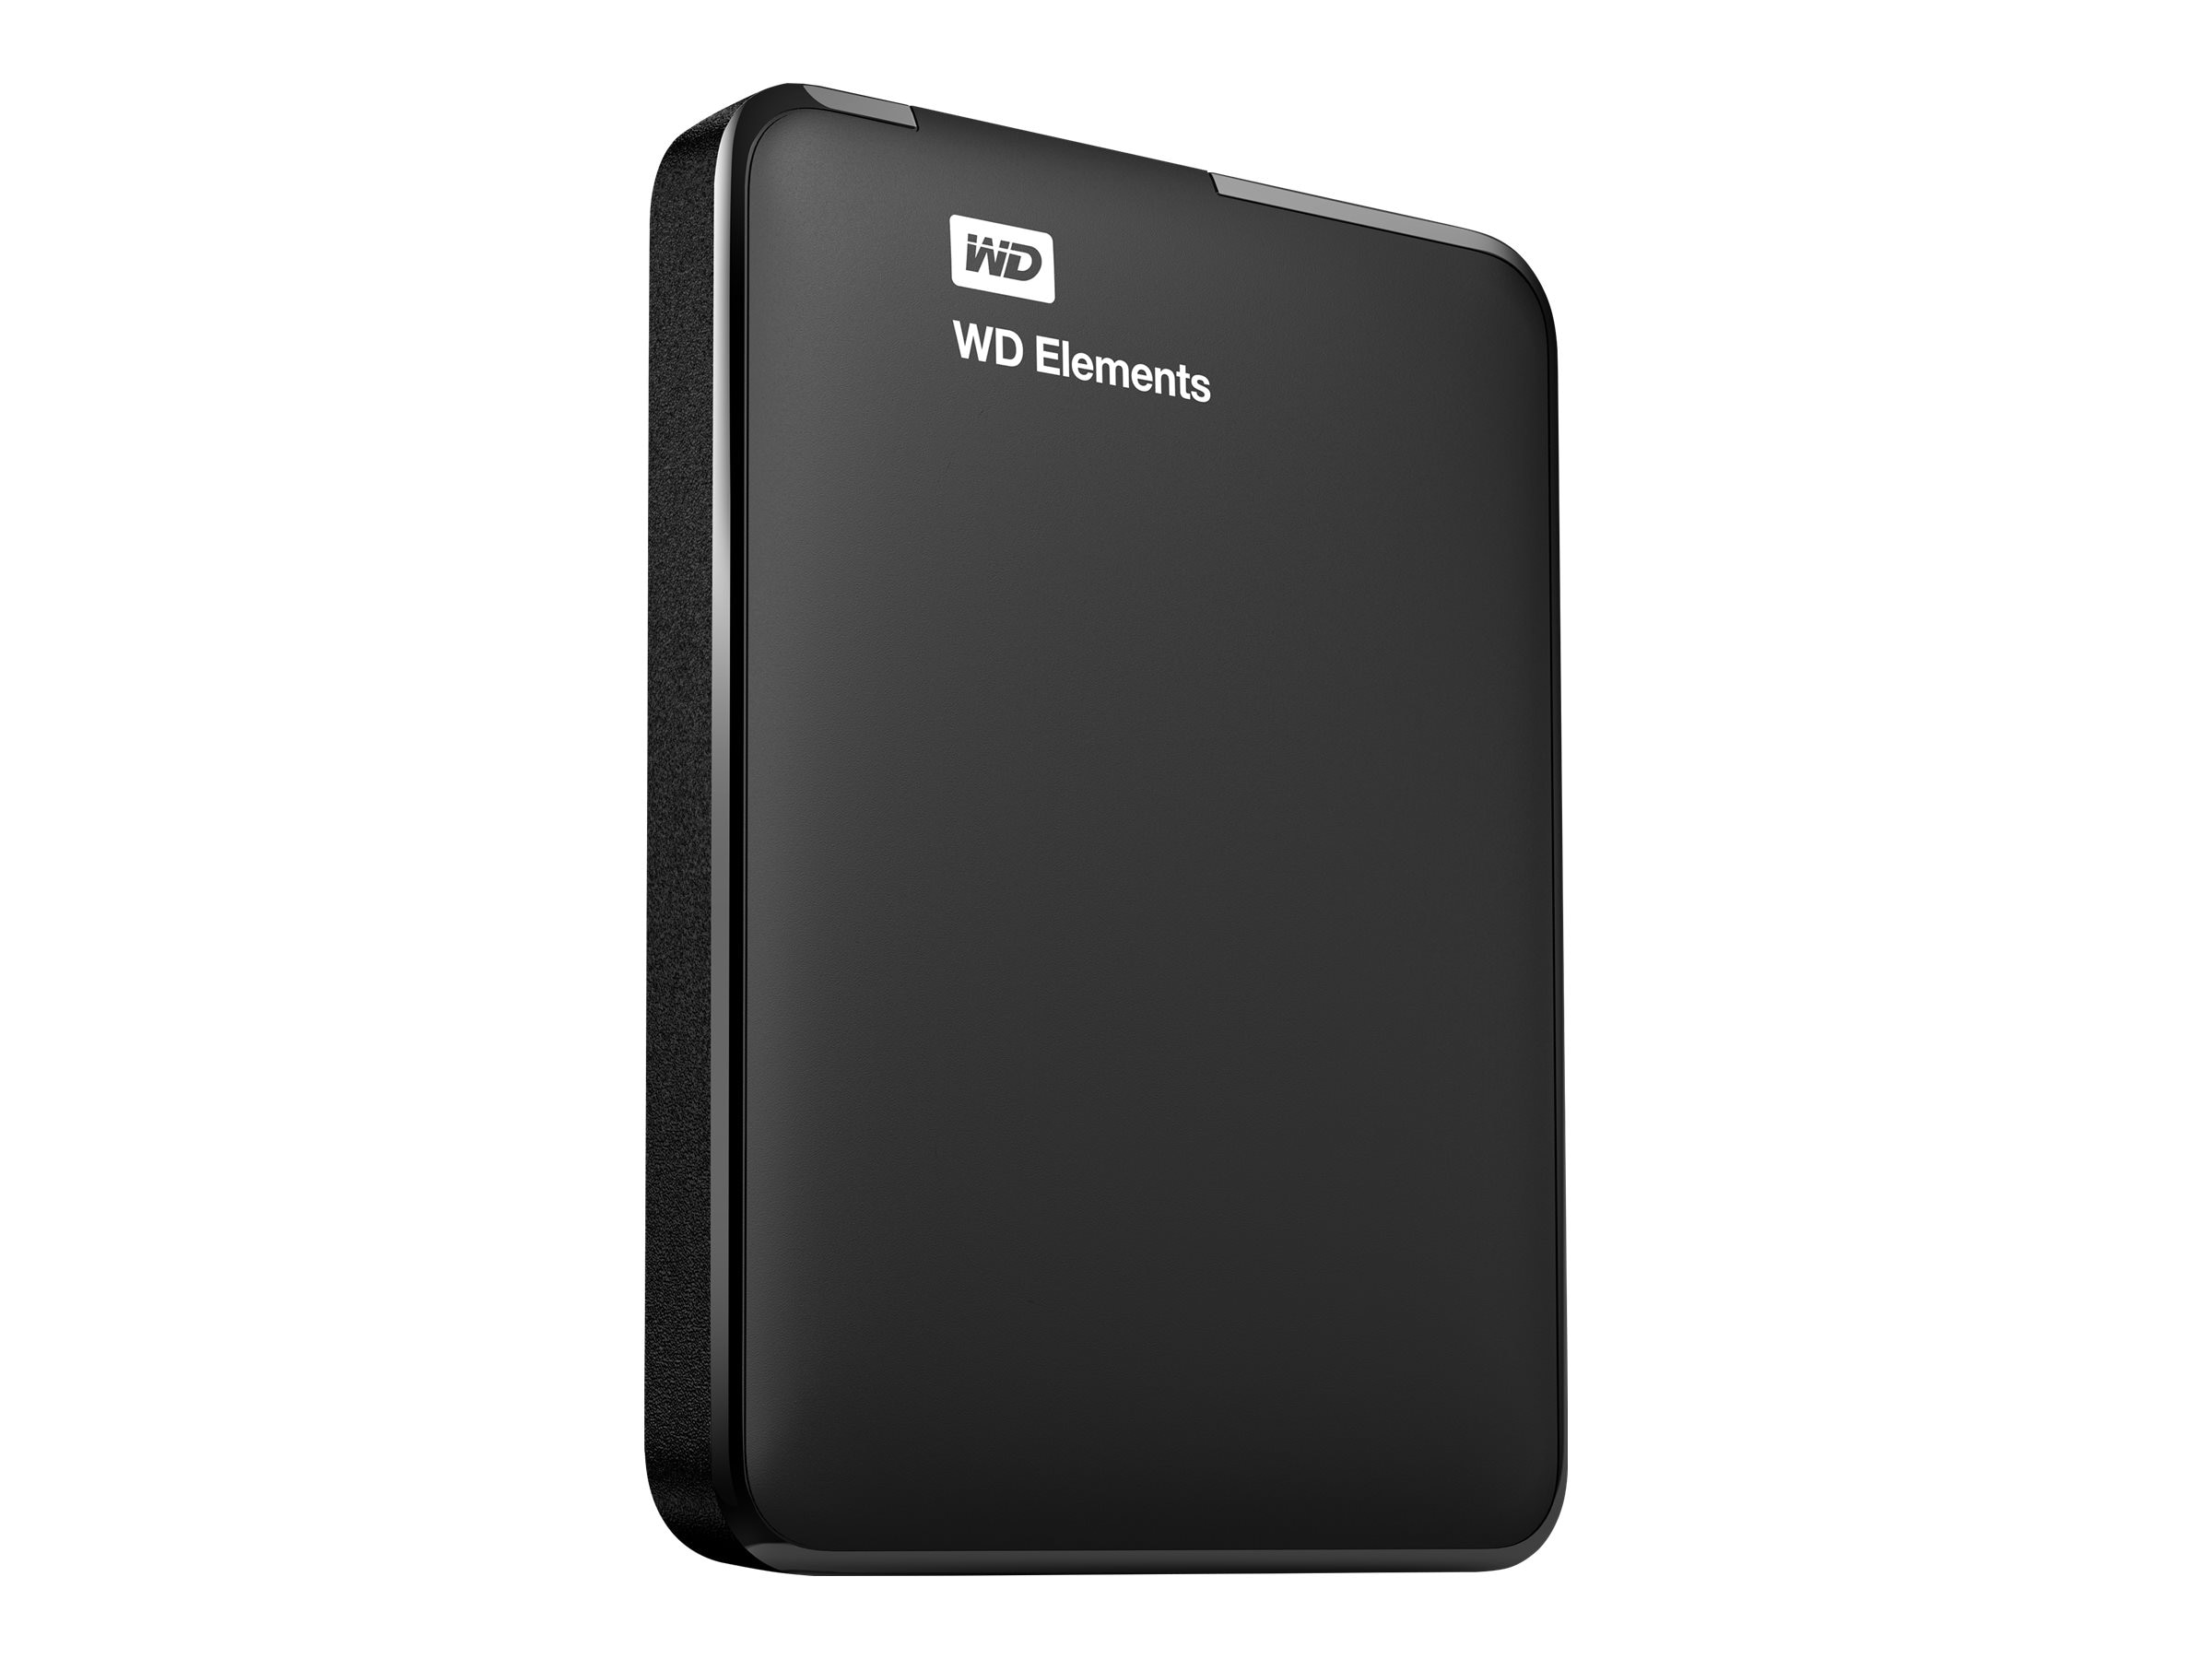 WD 1TB Elements USB 3.0 External Hard Drive, WDBUZG0010BBK-EESN